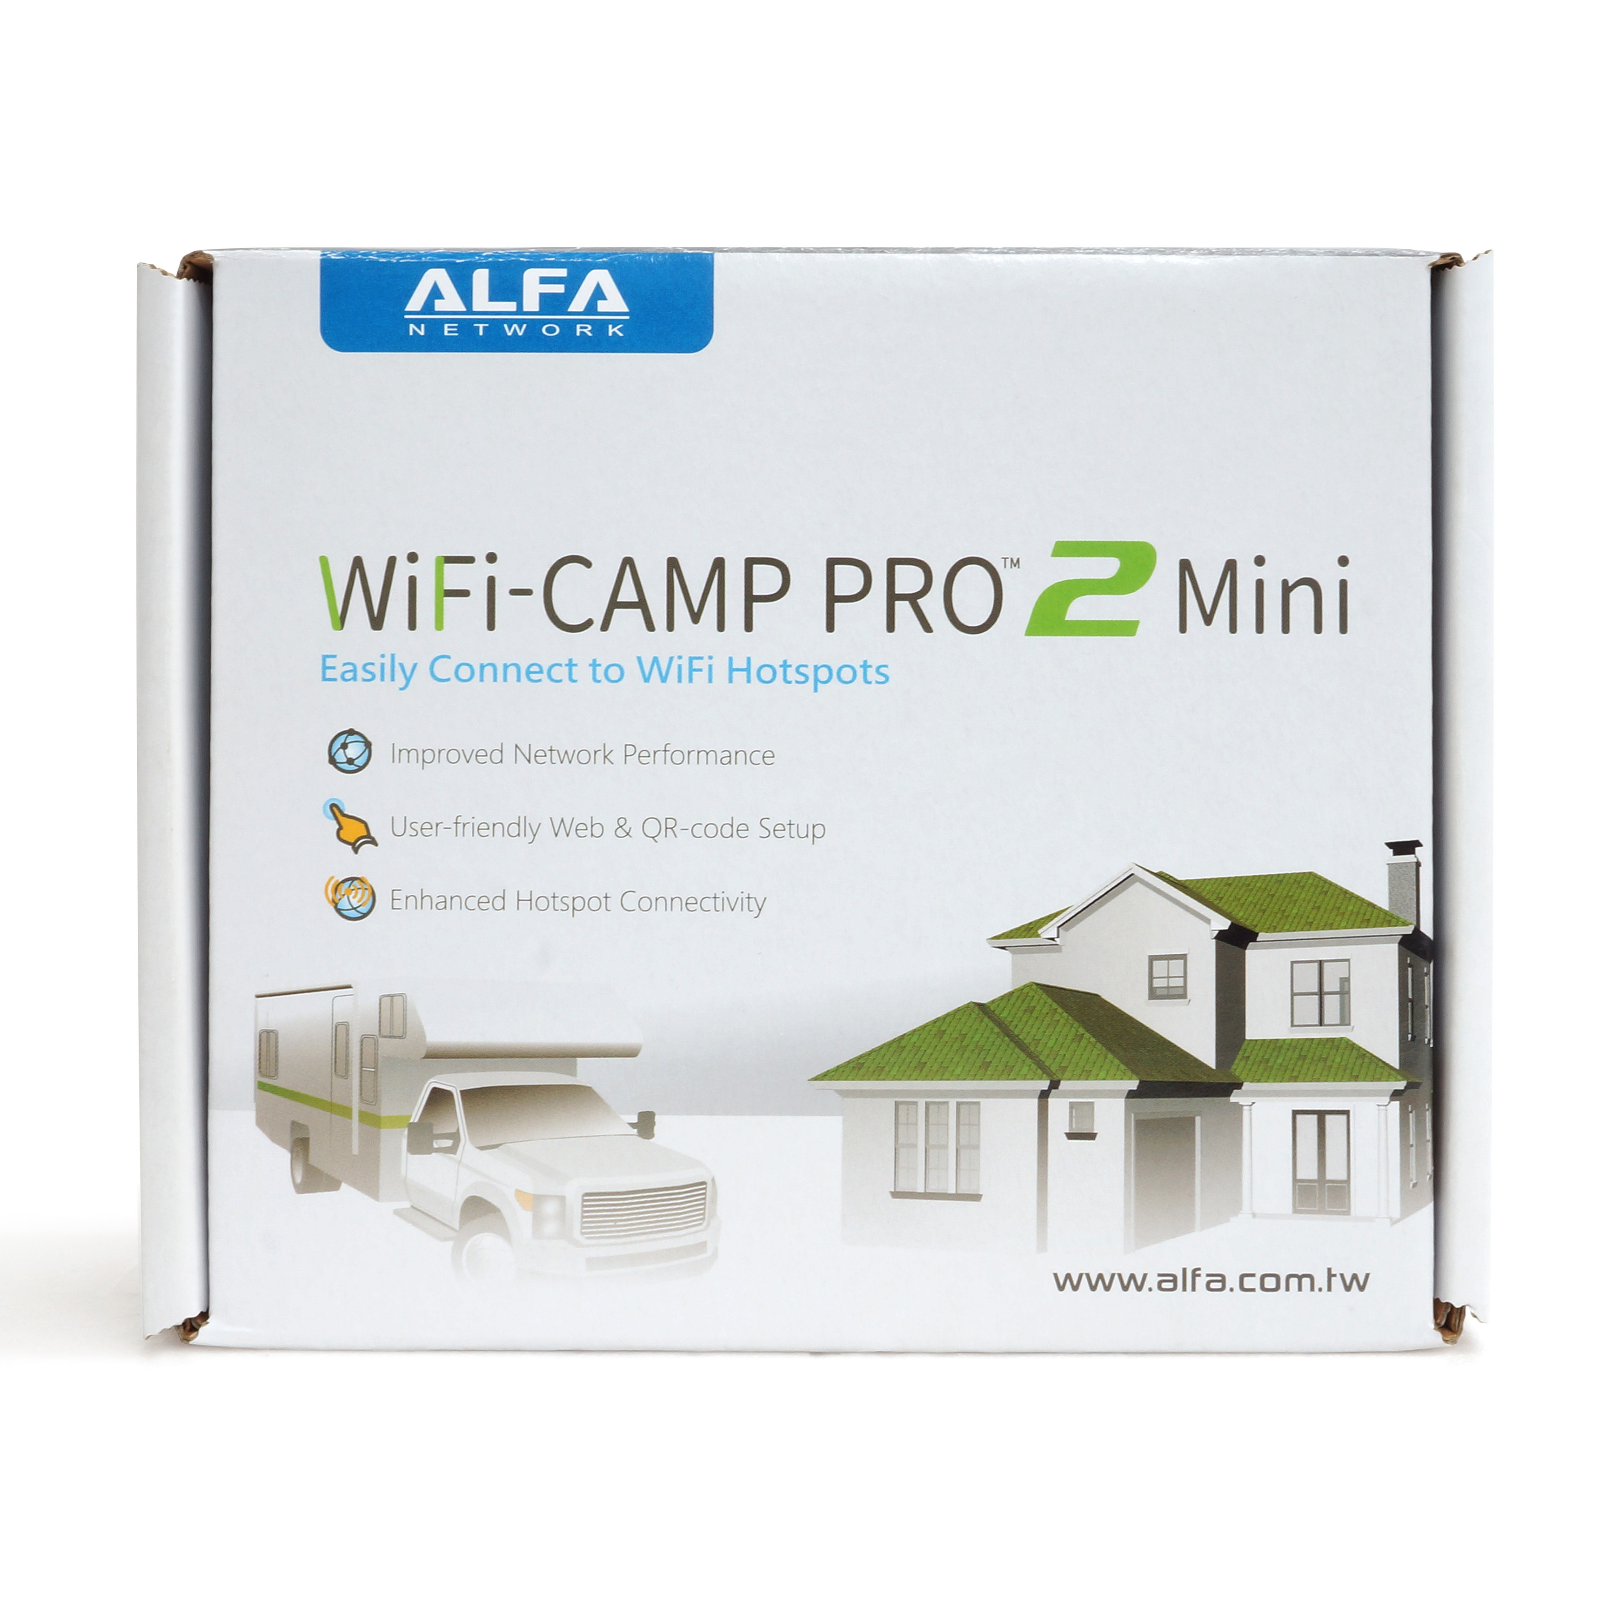 wifi camp pro 2 mini r36a extender